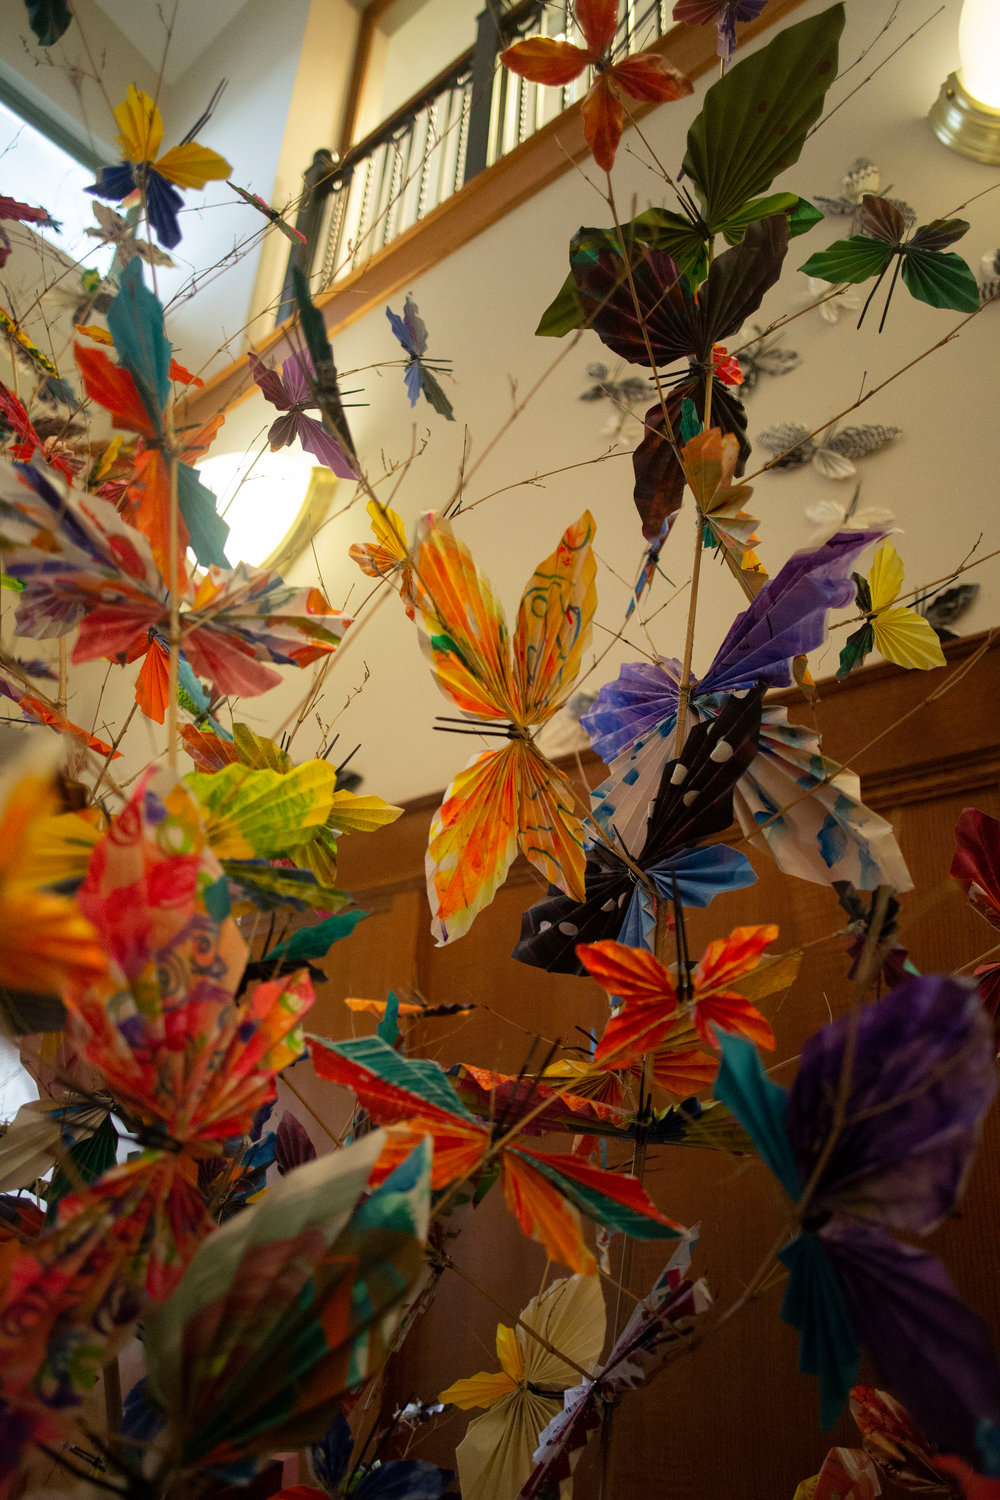 Age Alive hosted various community butterfly-making workshops in East Lansing to facilitate intergenerational conversations.